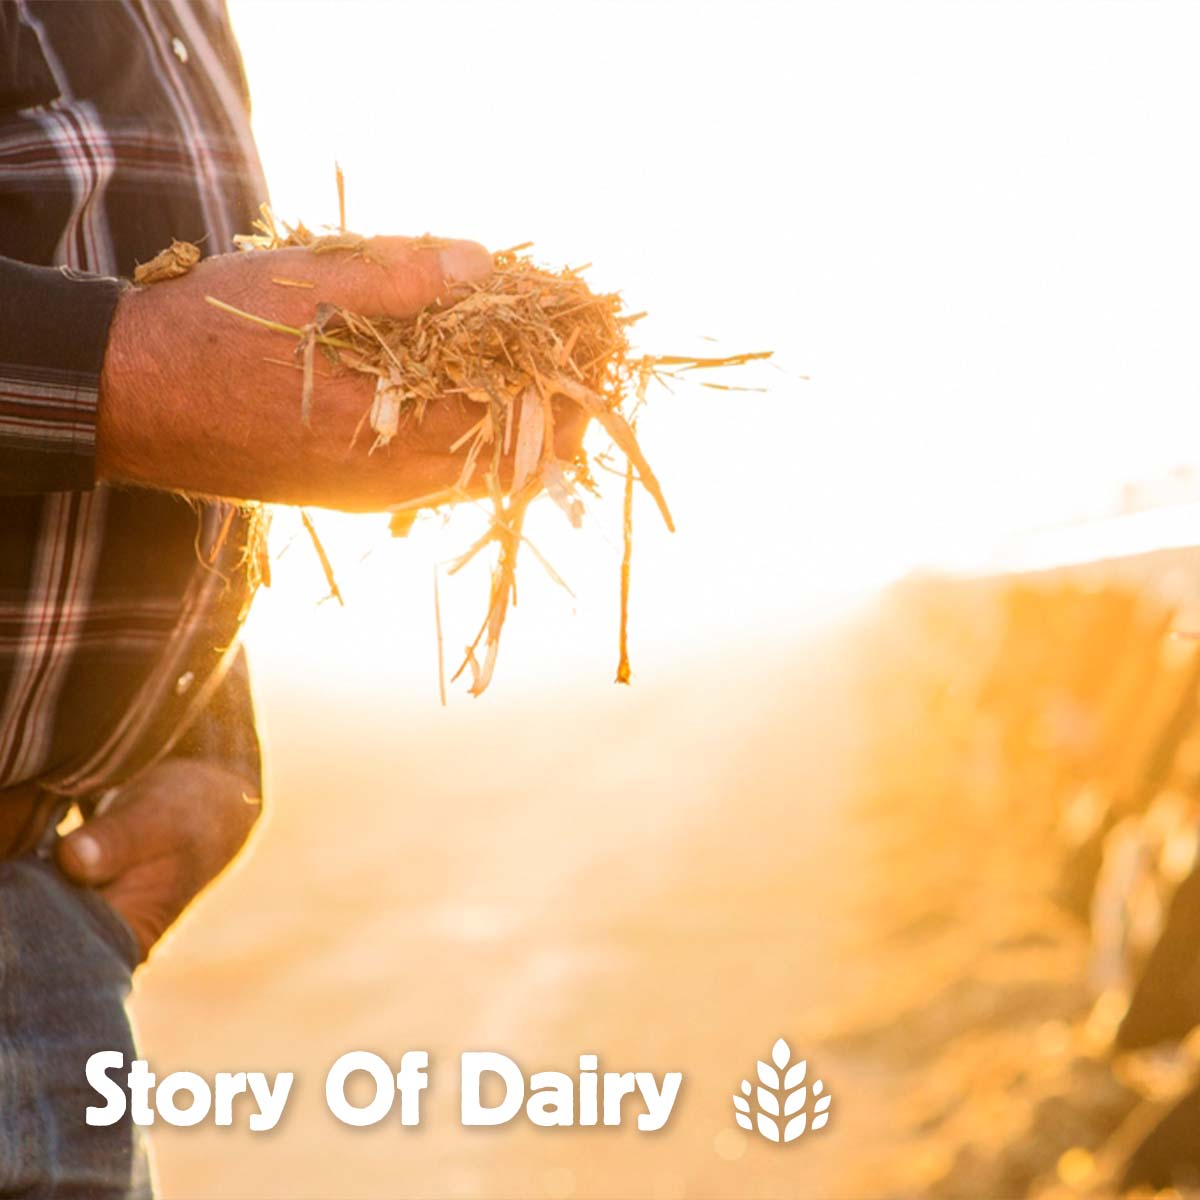 The Story of Dairy: Caring for the Cows Who Make Your Milk